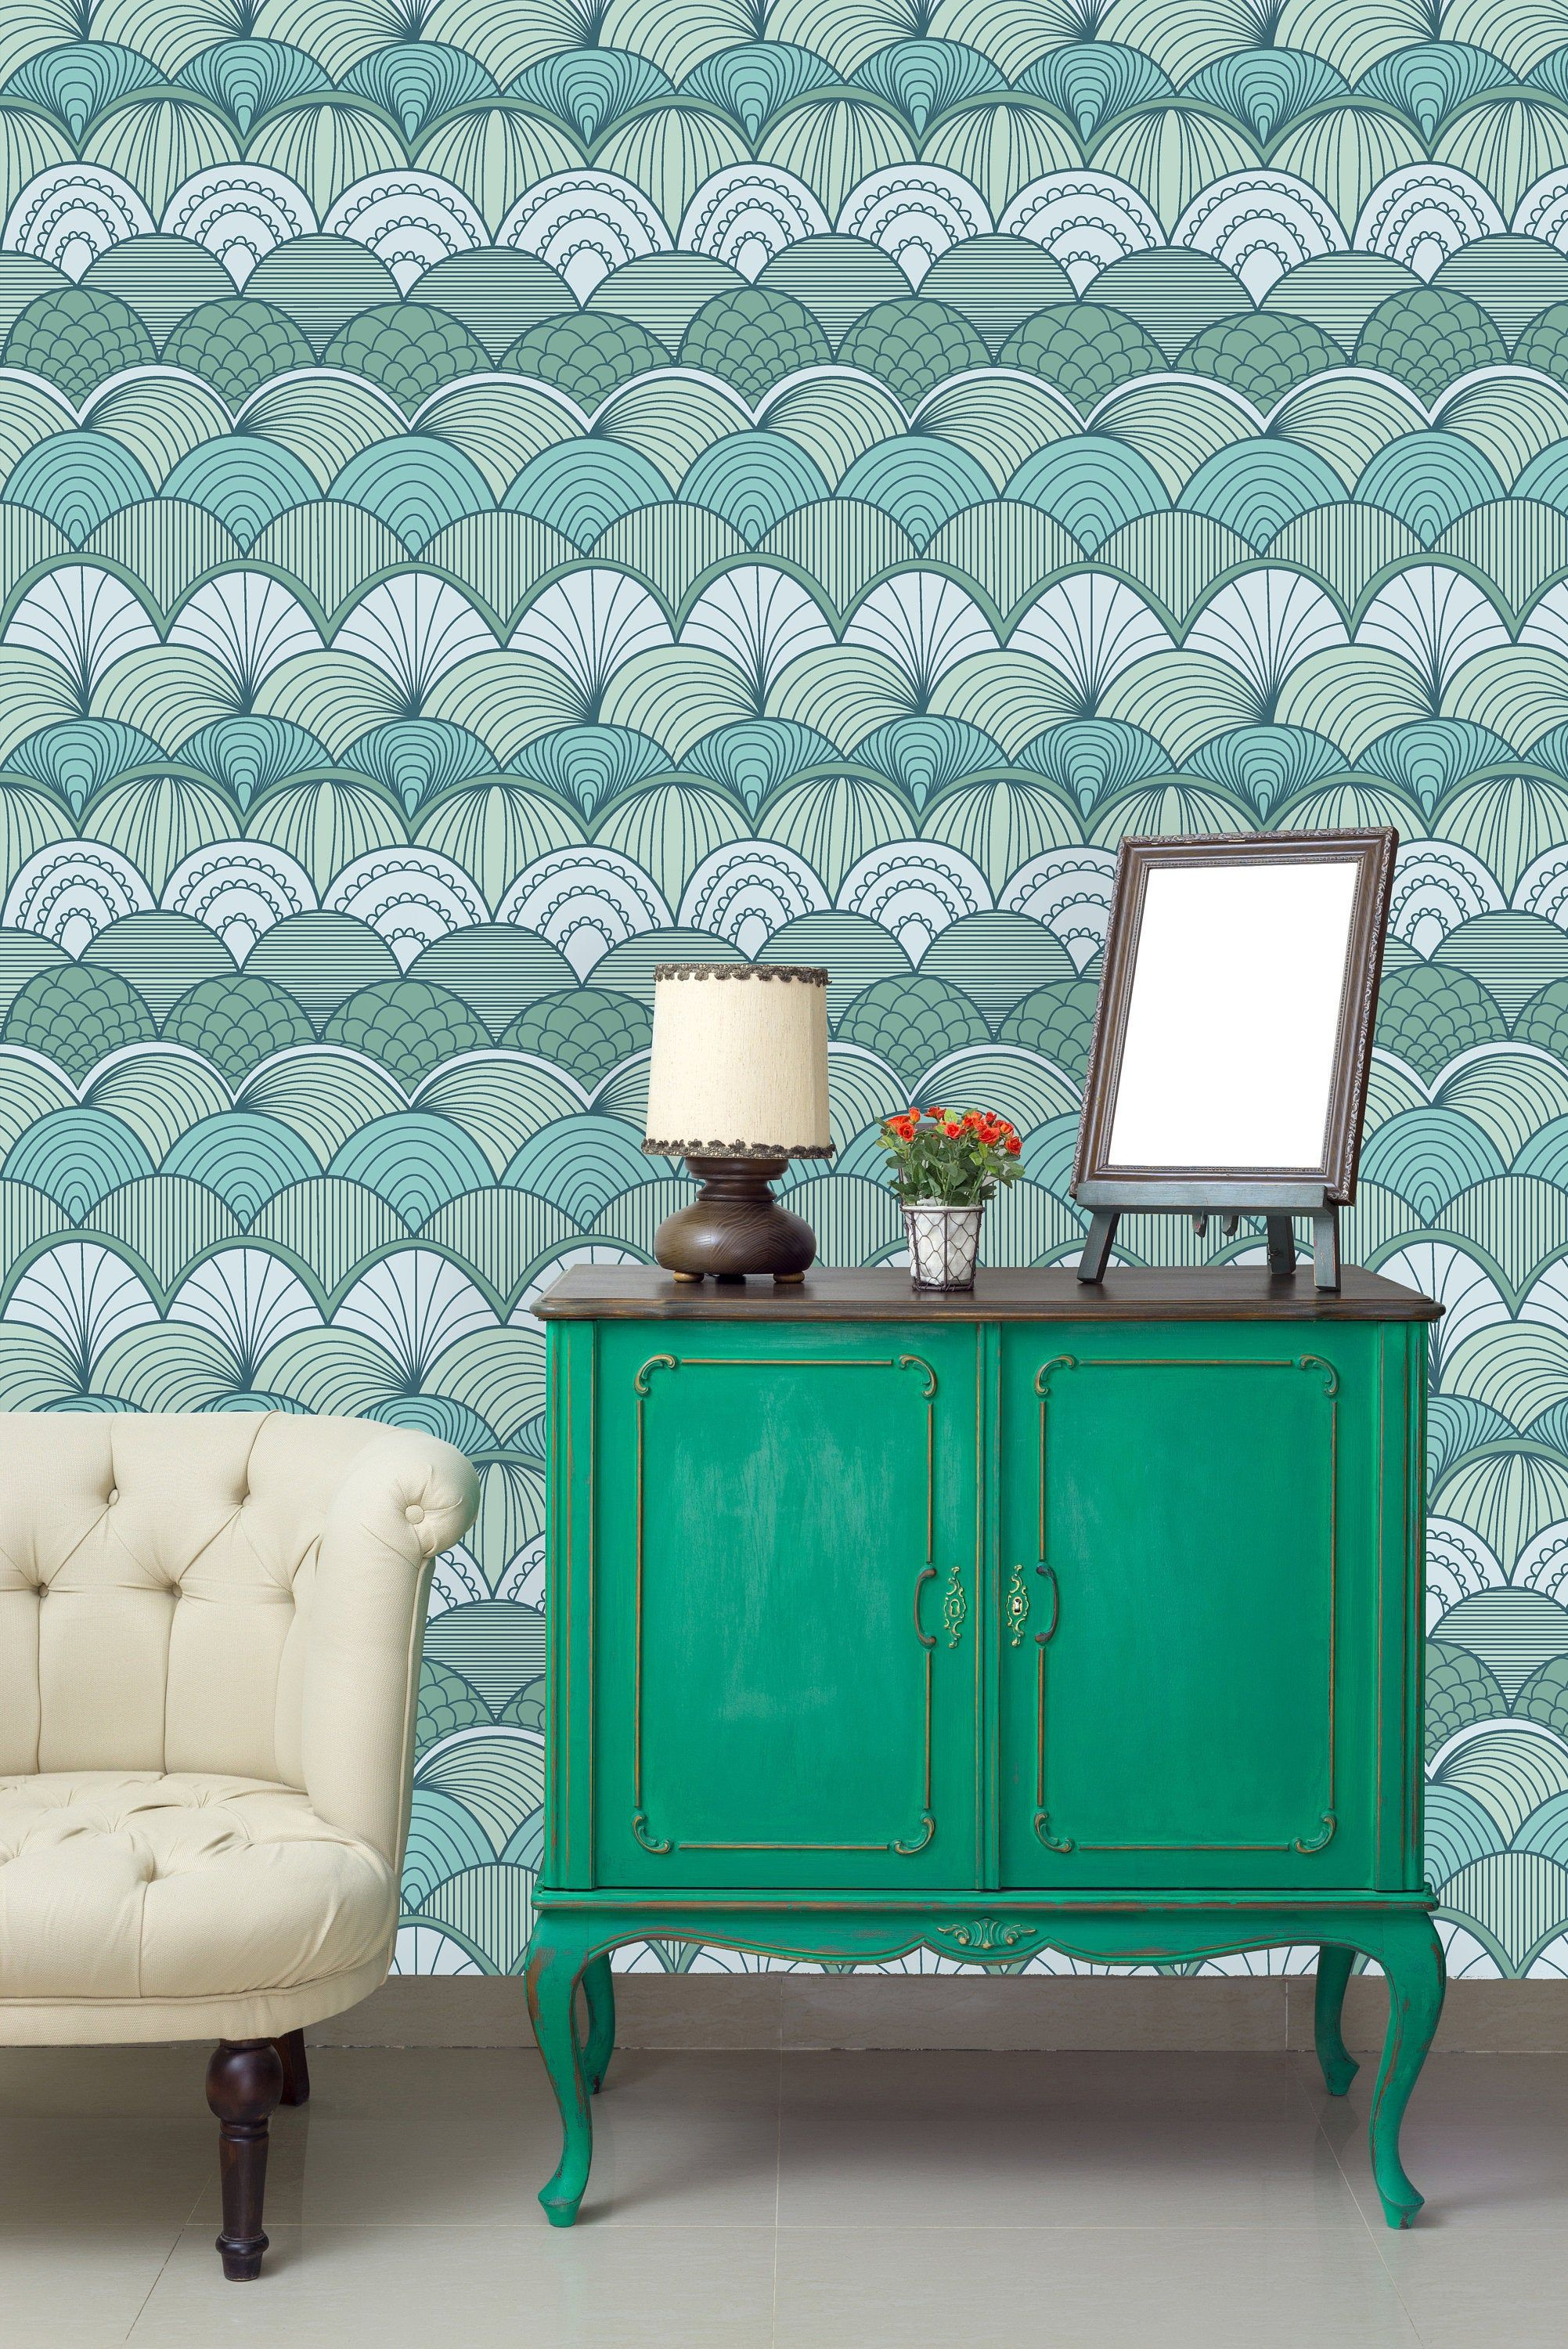 Green Scallops Removable Wallpaper Peel And Stick Etsy Wall Murals Home Decor Wall Wallpaper